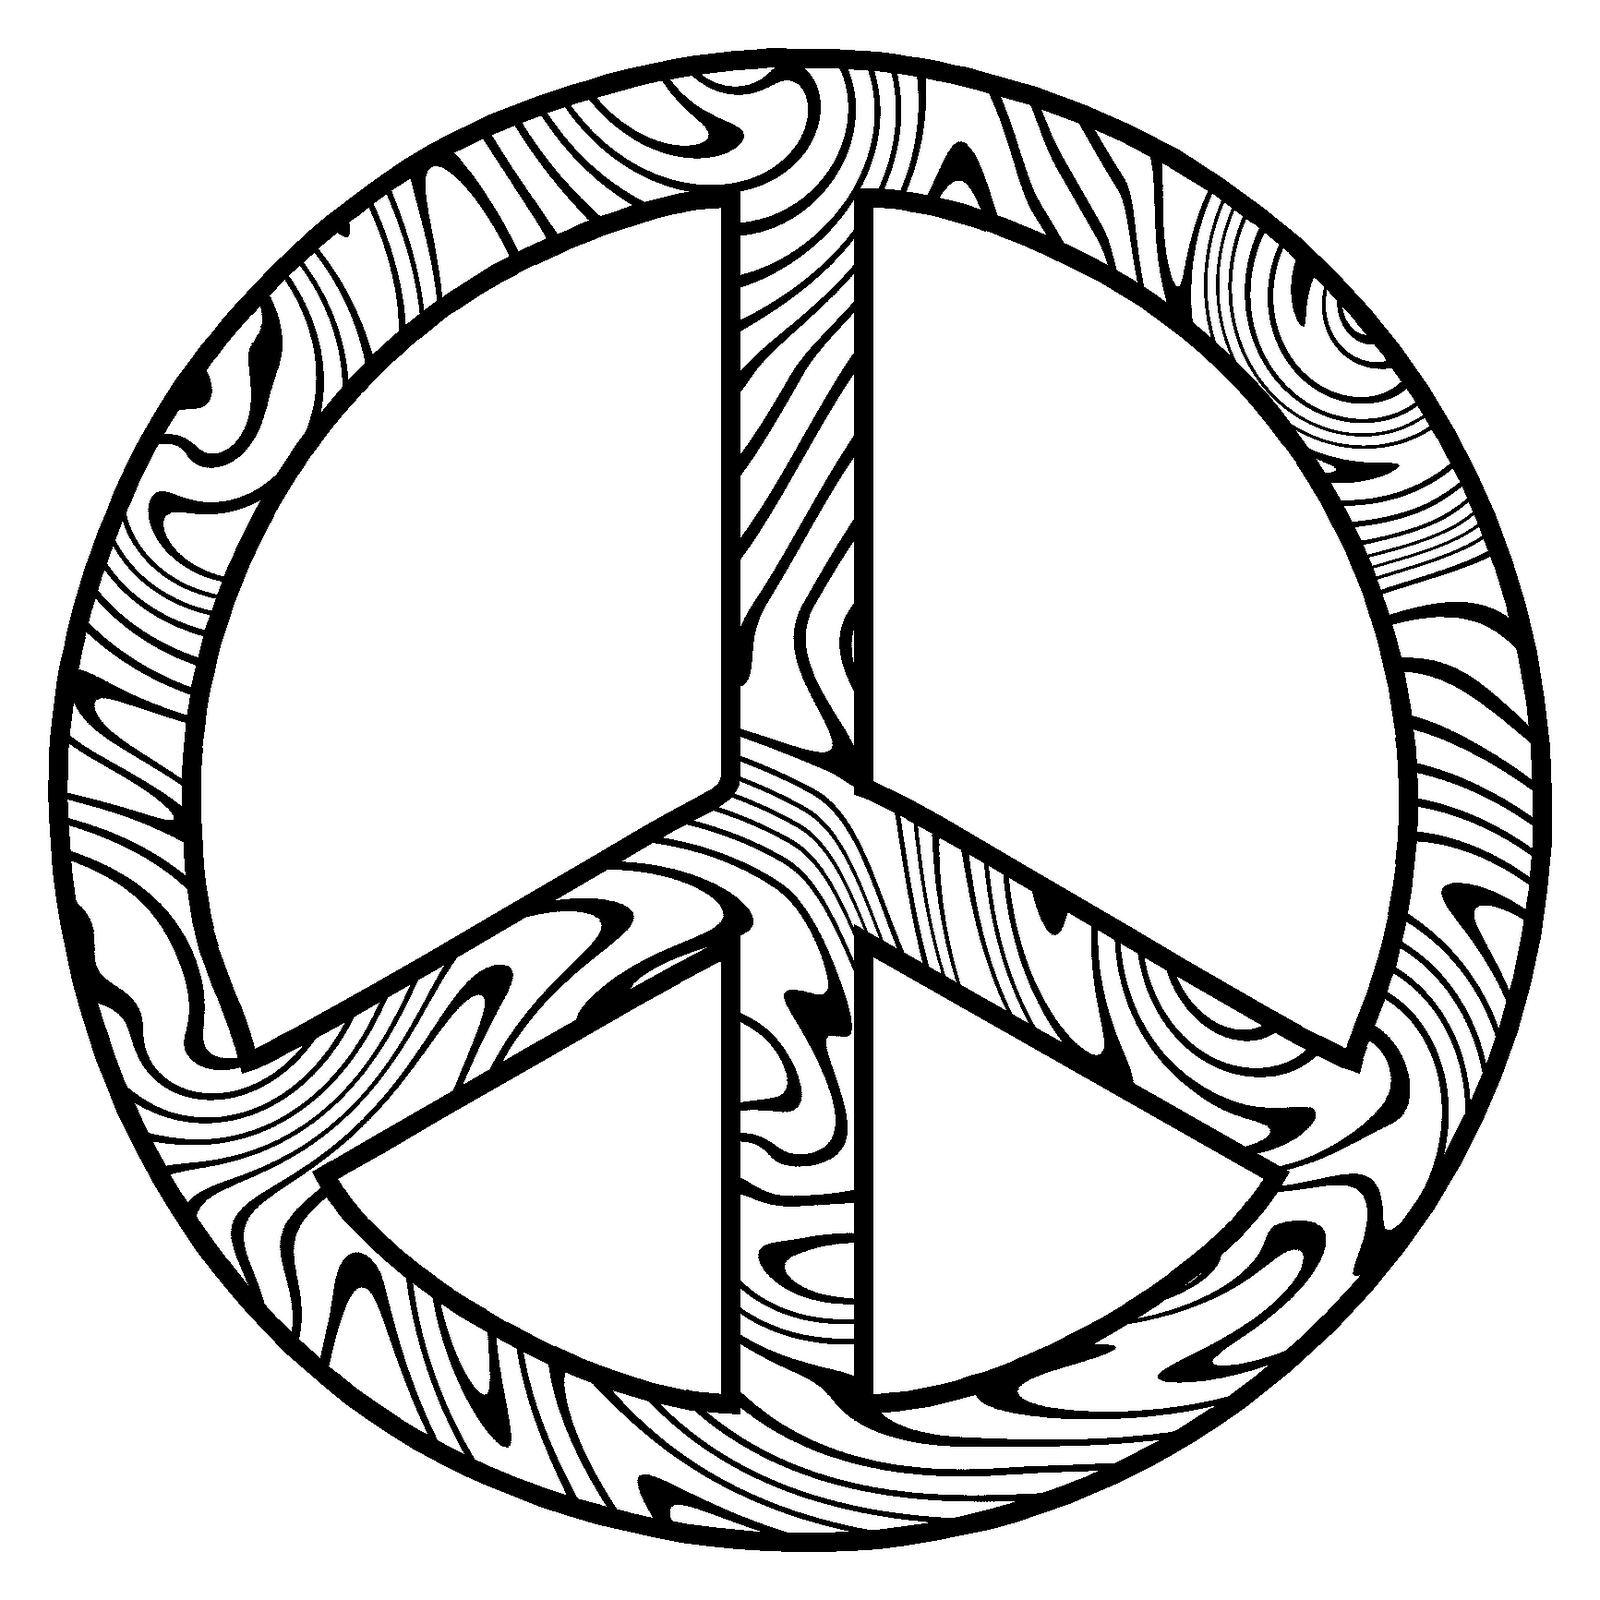 peace signs coloring pages - photo#21